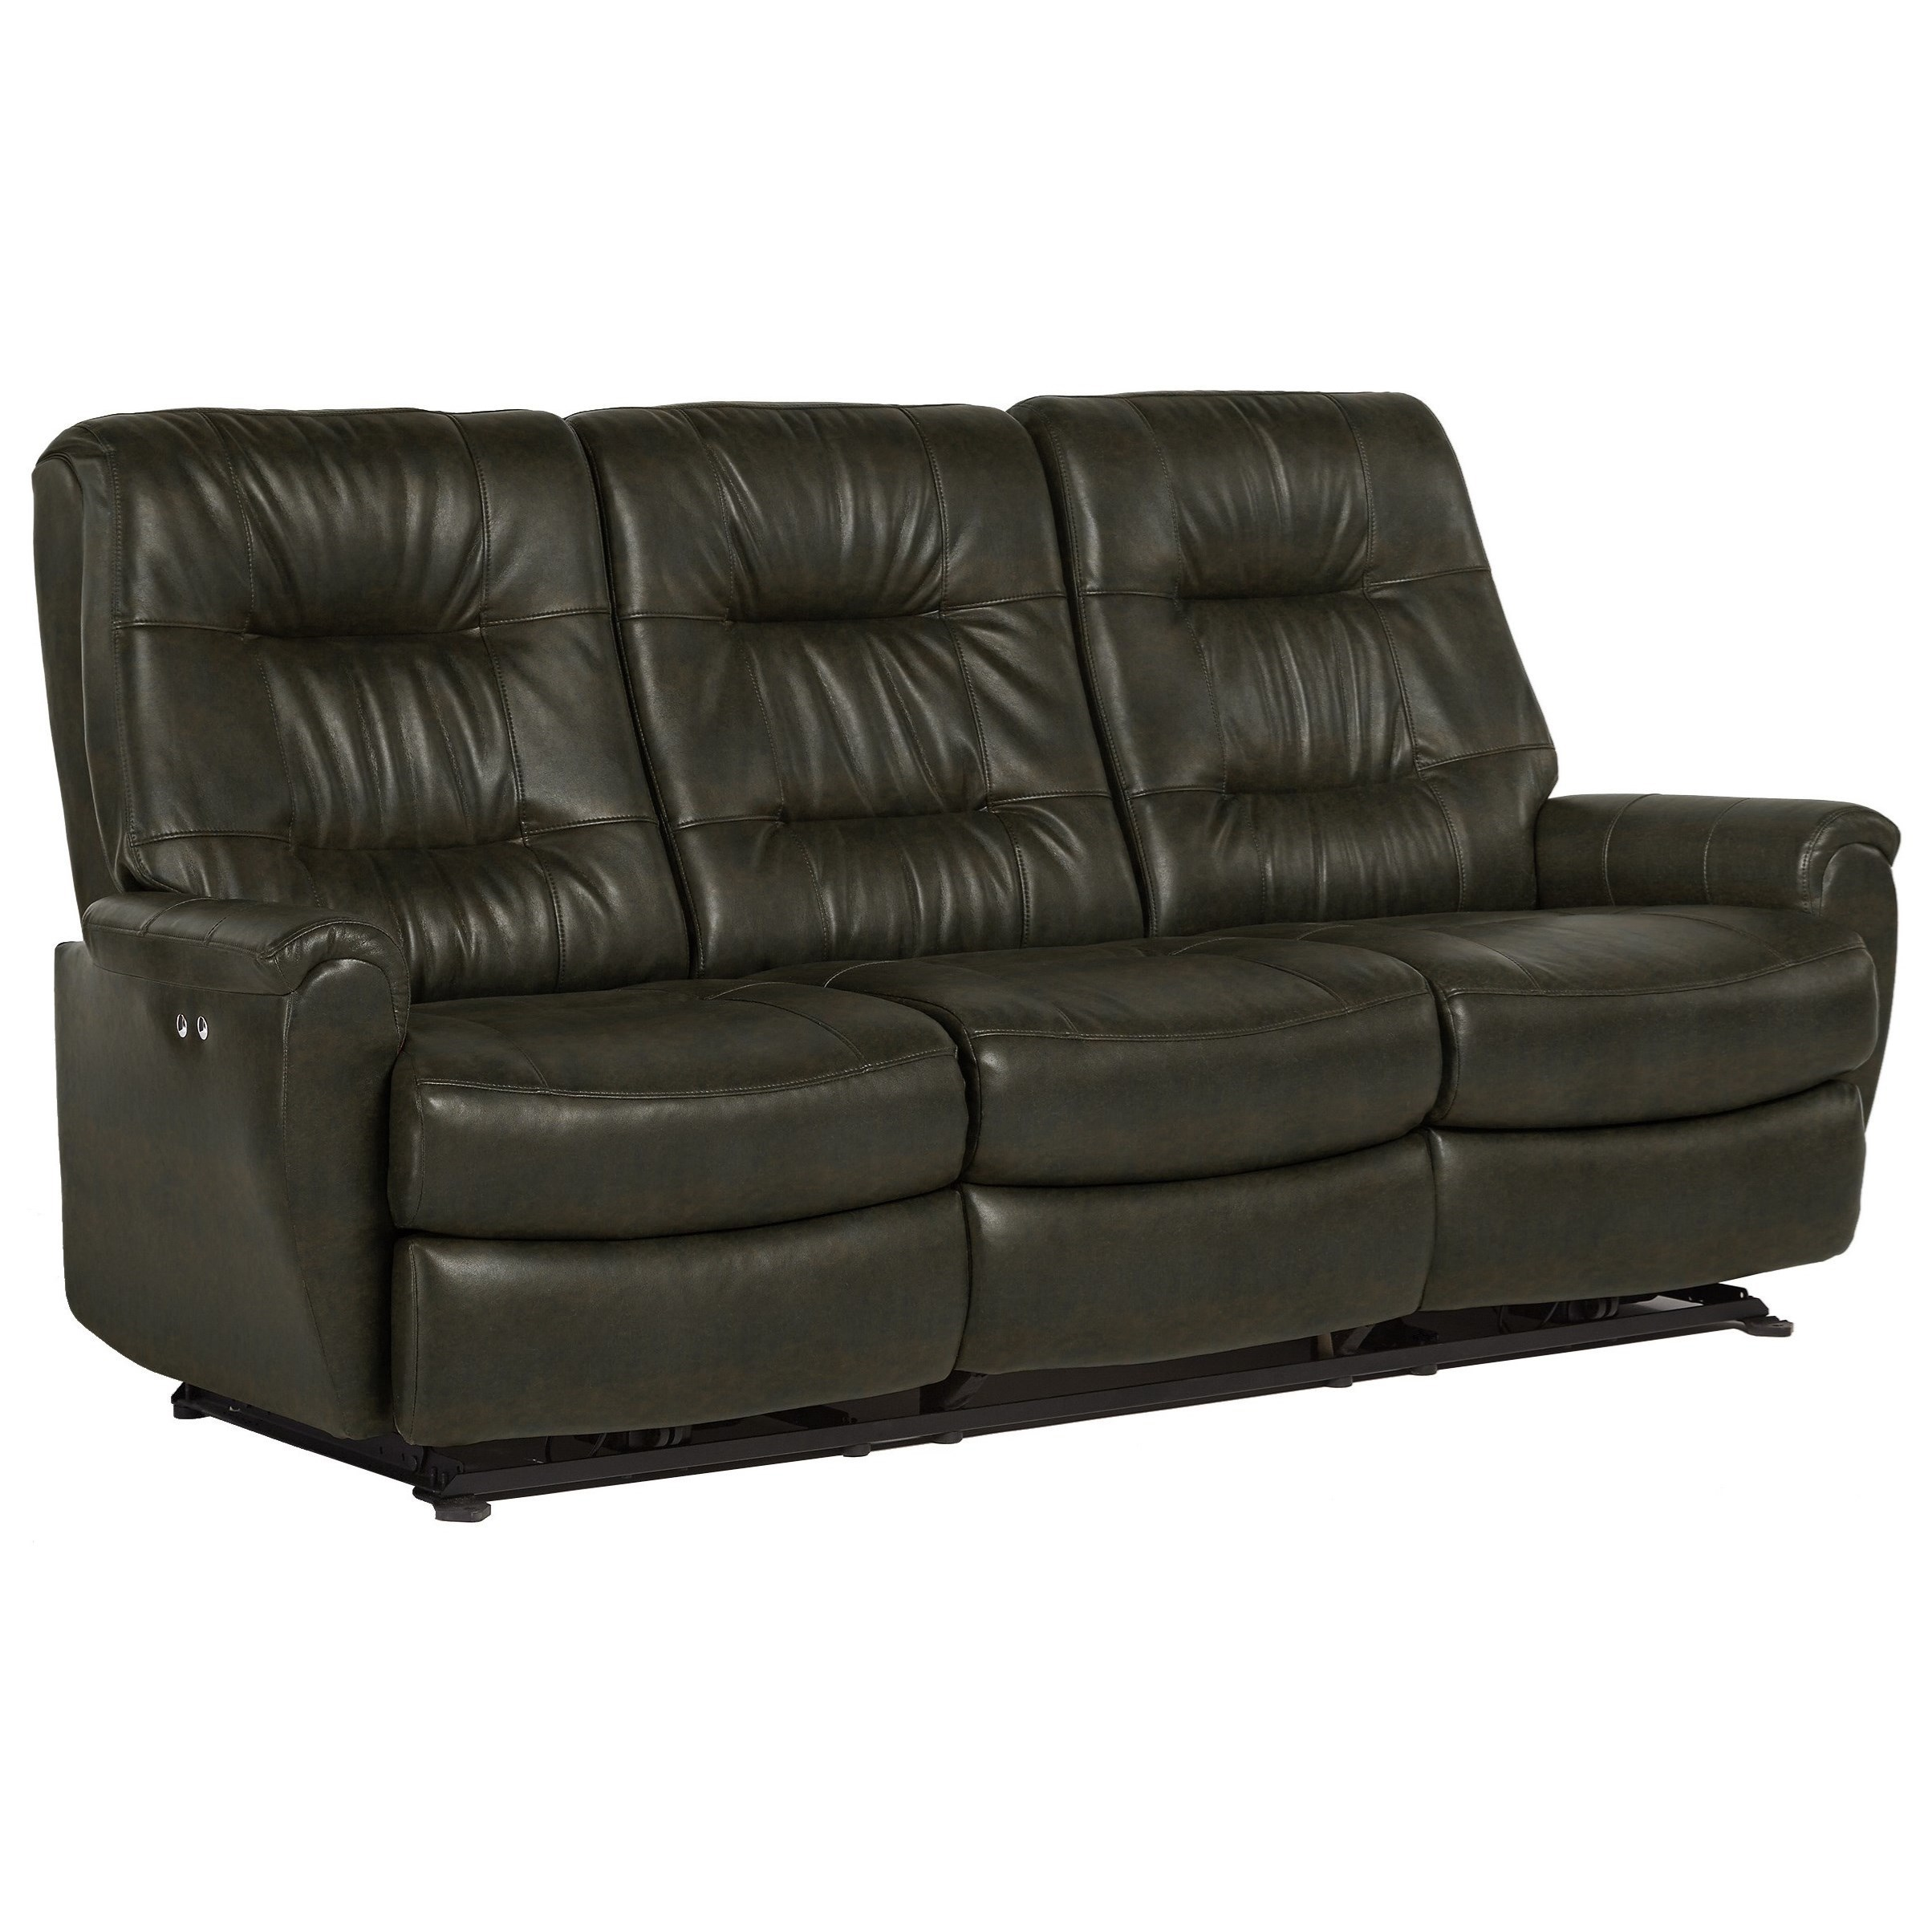 Best Home Furnishings Felicia Small-Scale Power Reclining Sofa with Chic Button Tufting  sc 1 st  Wayside Furniture & Best Home Furnishings Felicia Small-Scale Power Reclining Sofa ... islam-shia.org